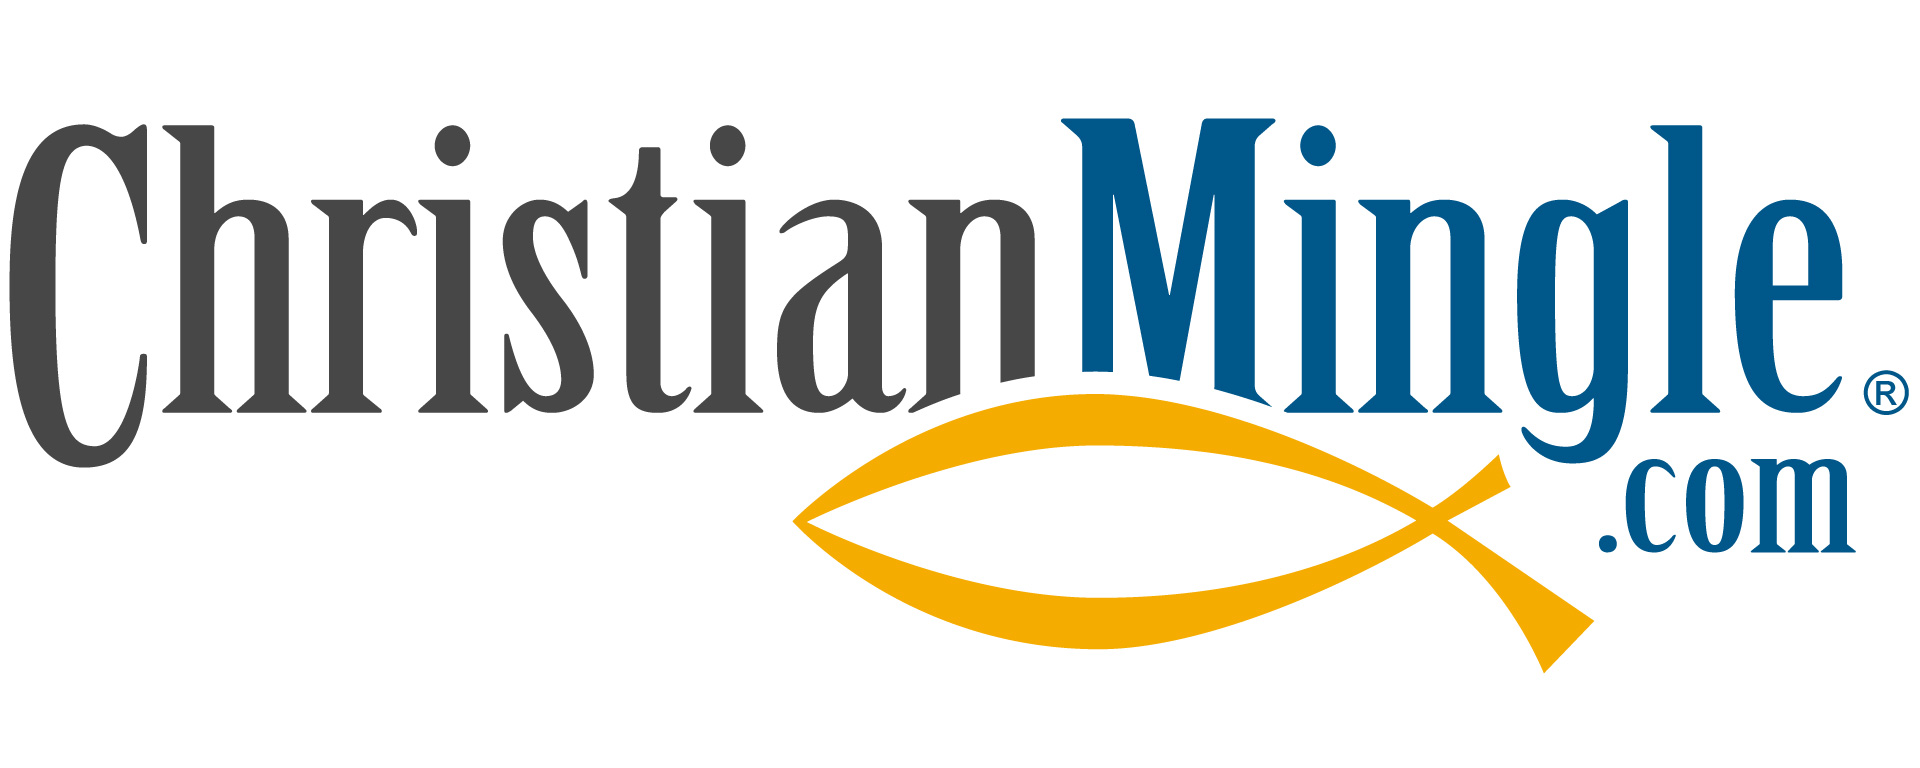 Christian mingle promo